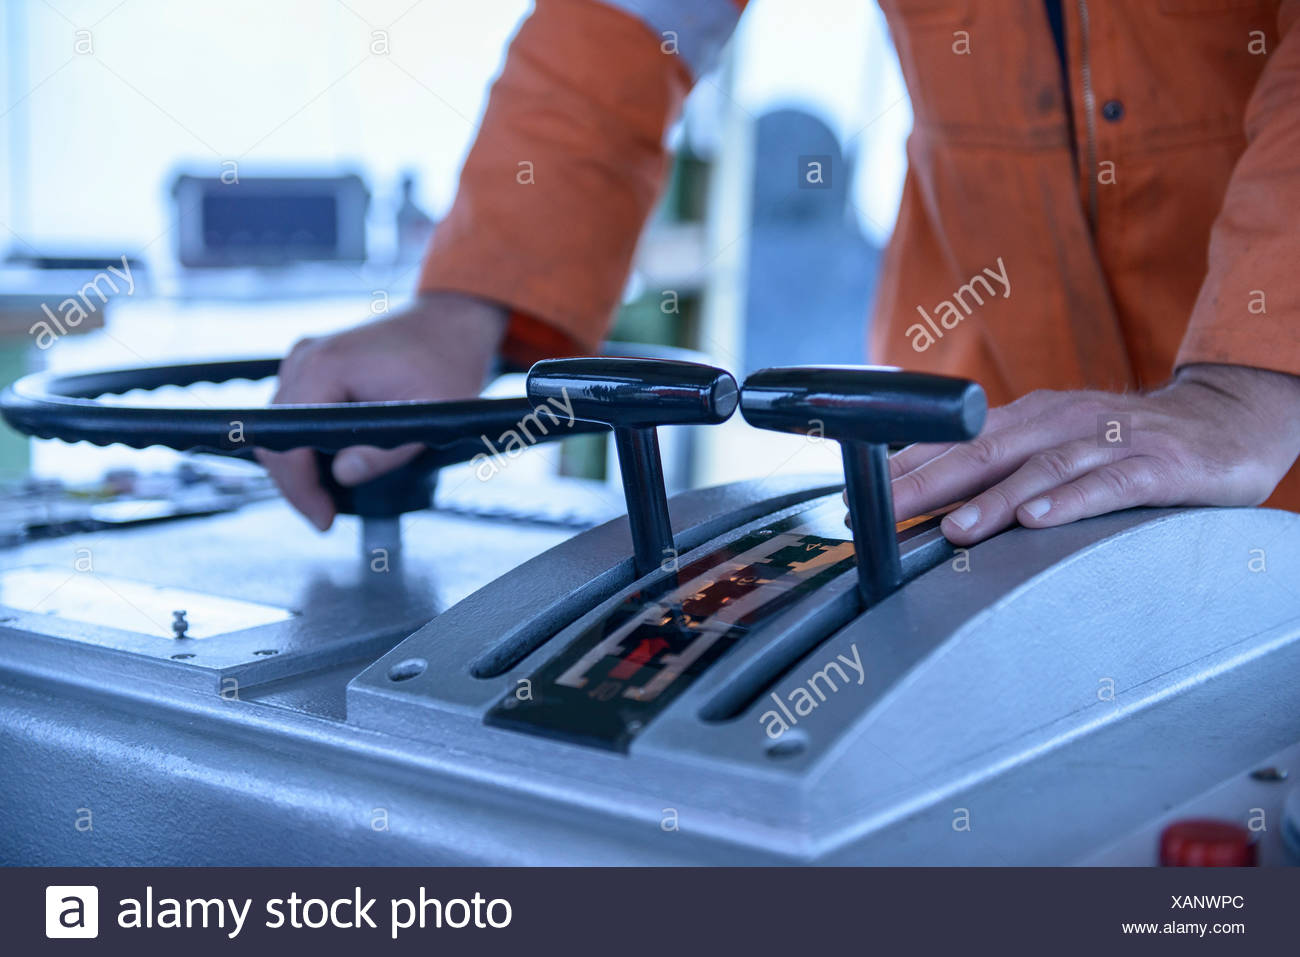 Worker manning tugboat controls - Stock Image